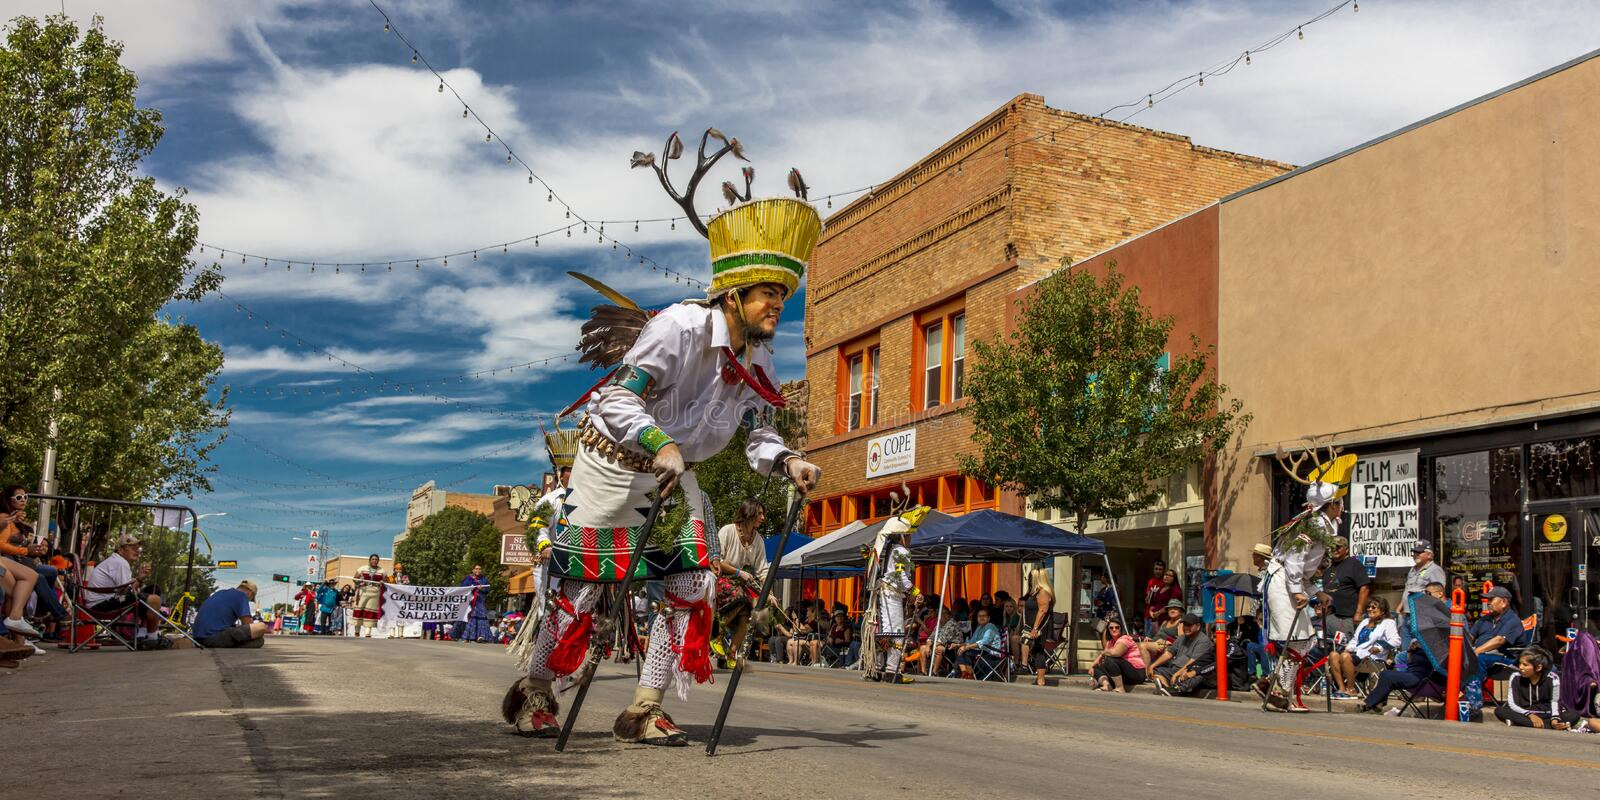 Parade of Native Americans 98th Gallup Inter-tribal Indian Ceremonial, New Mexico. AUGUST 10, 2019 - GALLUP NEW MEXICO, USA - Portraits of Native American with stock images